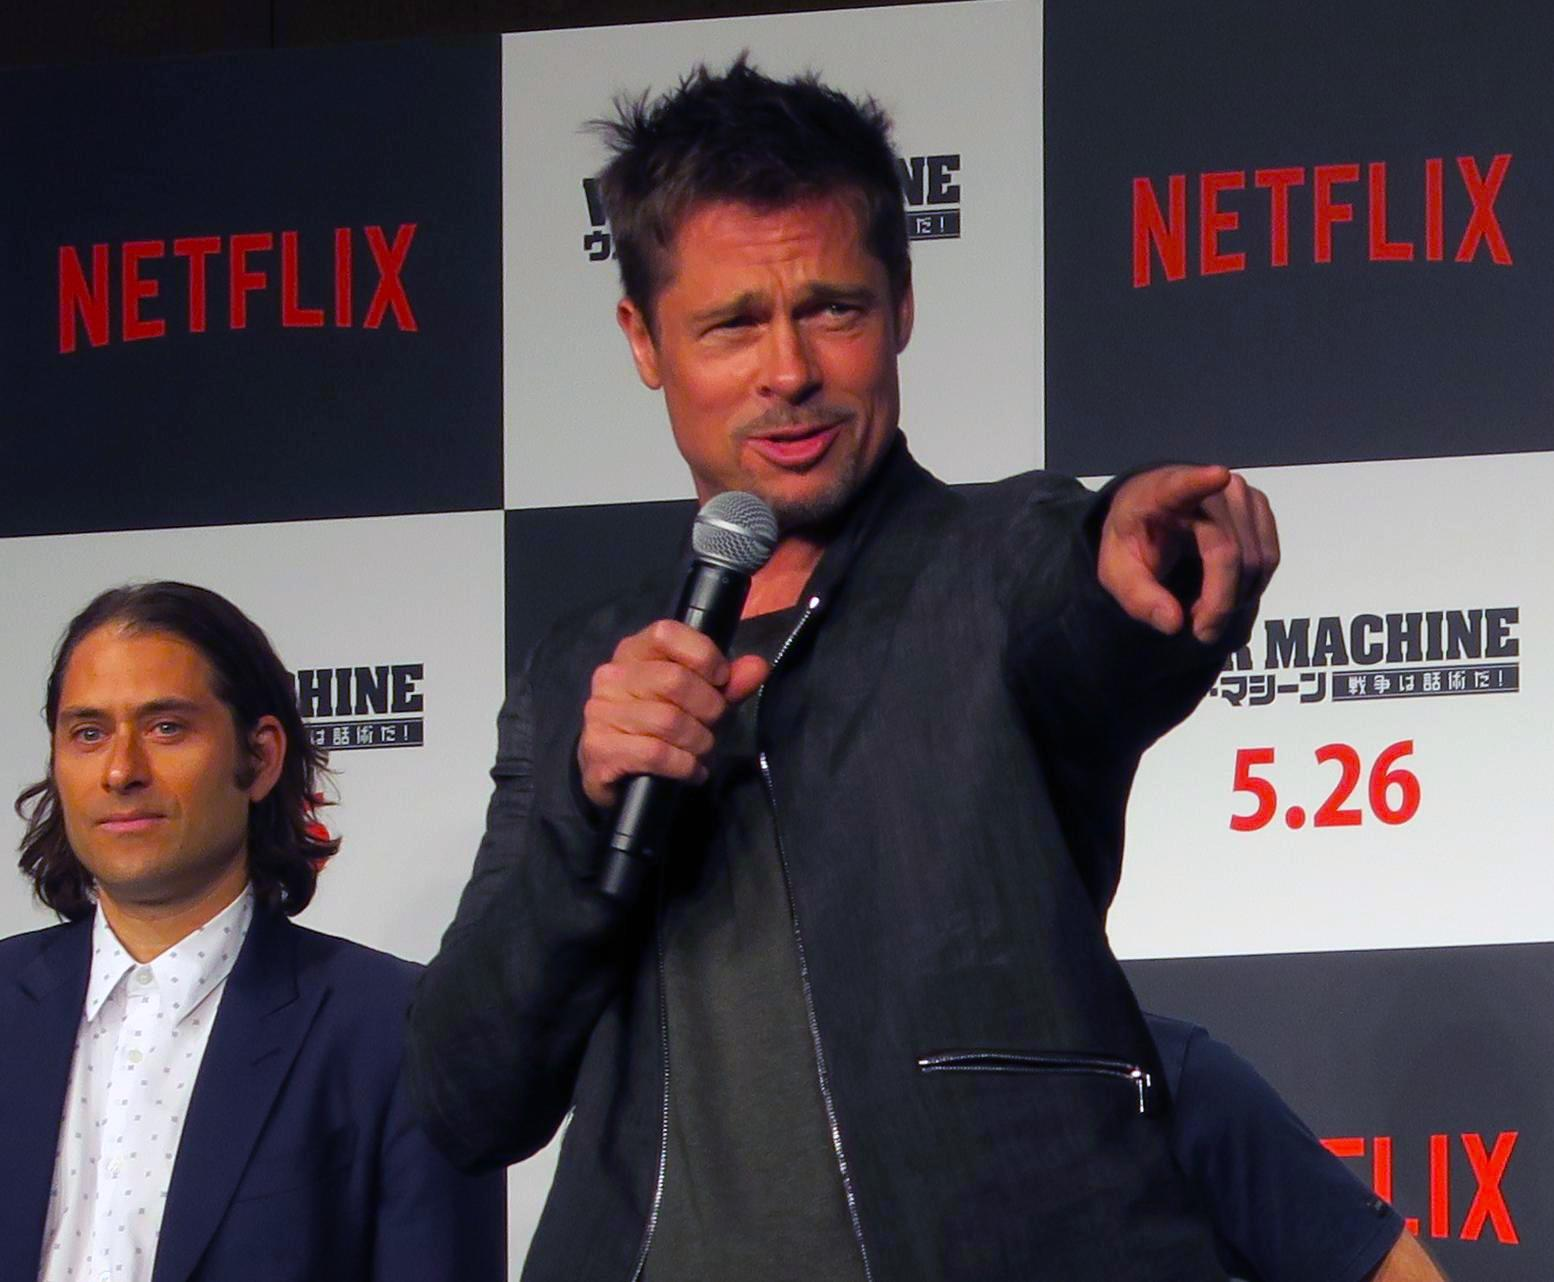 Jeremy Kleiner (left) and Brad Pitt (right) at the Japan press conference for the Netflix original film 'War Machine'.